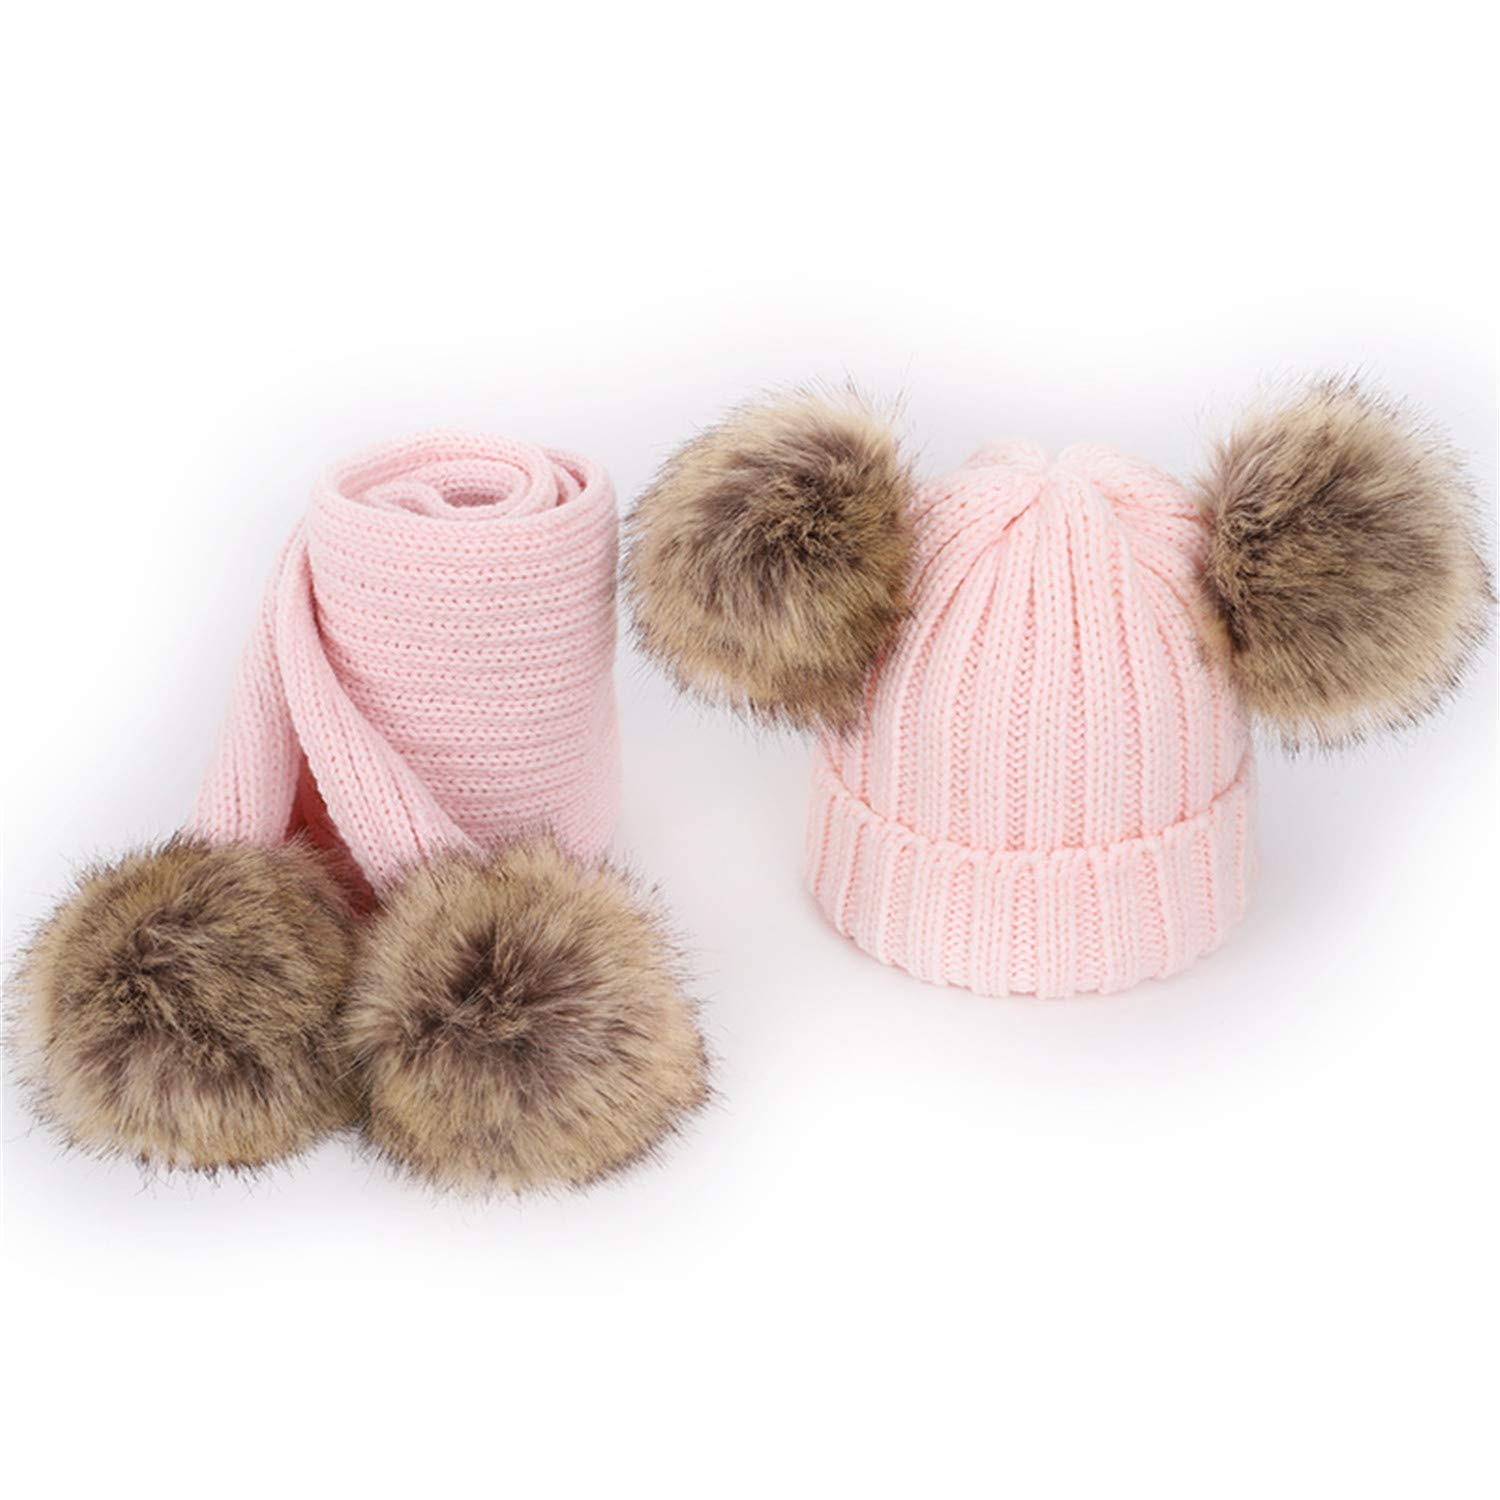 14555b1cd76 Amazon.com  2018 Children s Pompom Knit Beanies Hat Scarf 2 Pieces Set  Autumn Winter Boy Girl Wool Soft Cap Scarves Baby Kids Cute Pink  Clothing